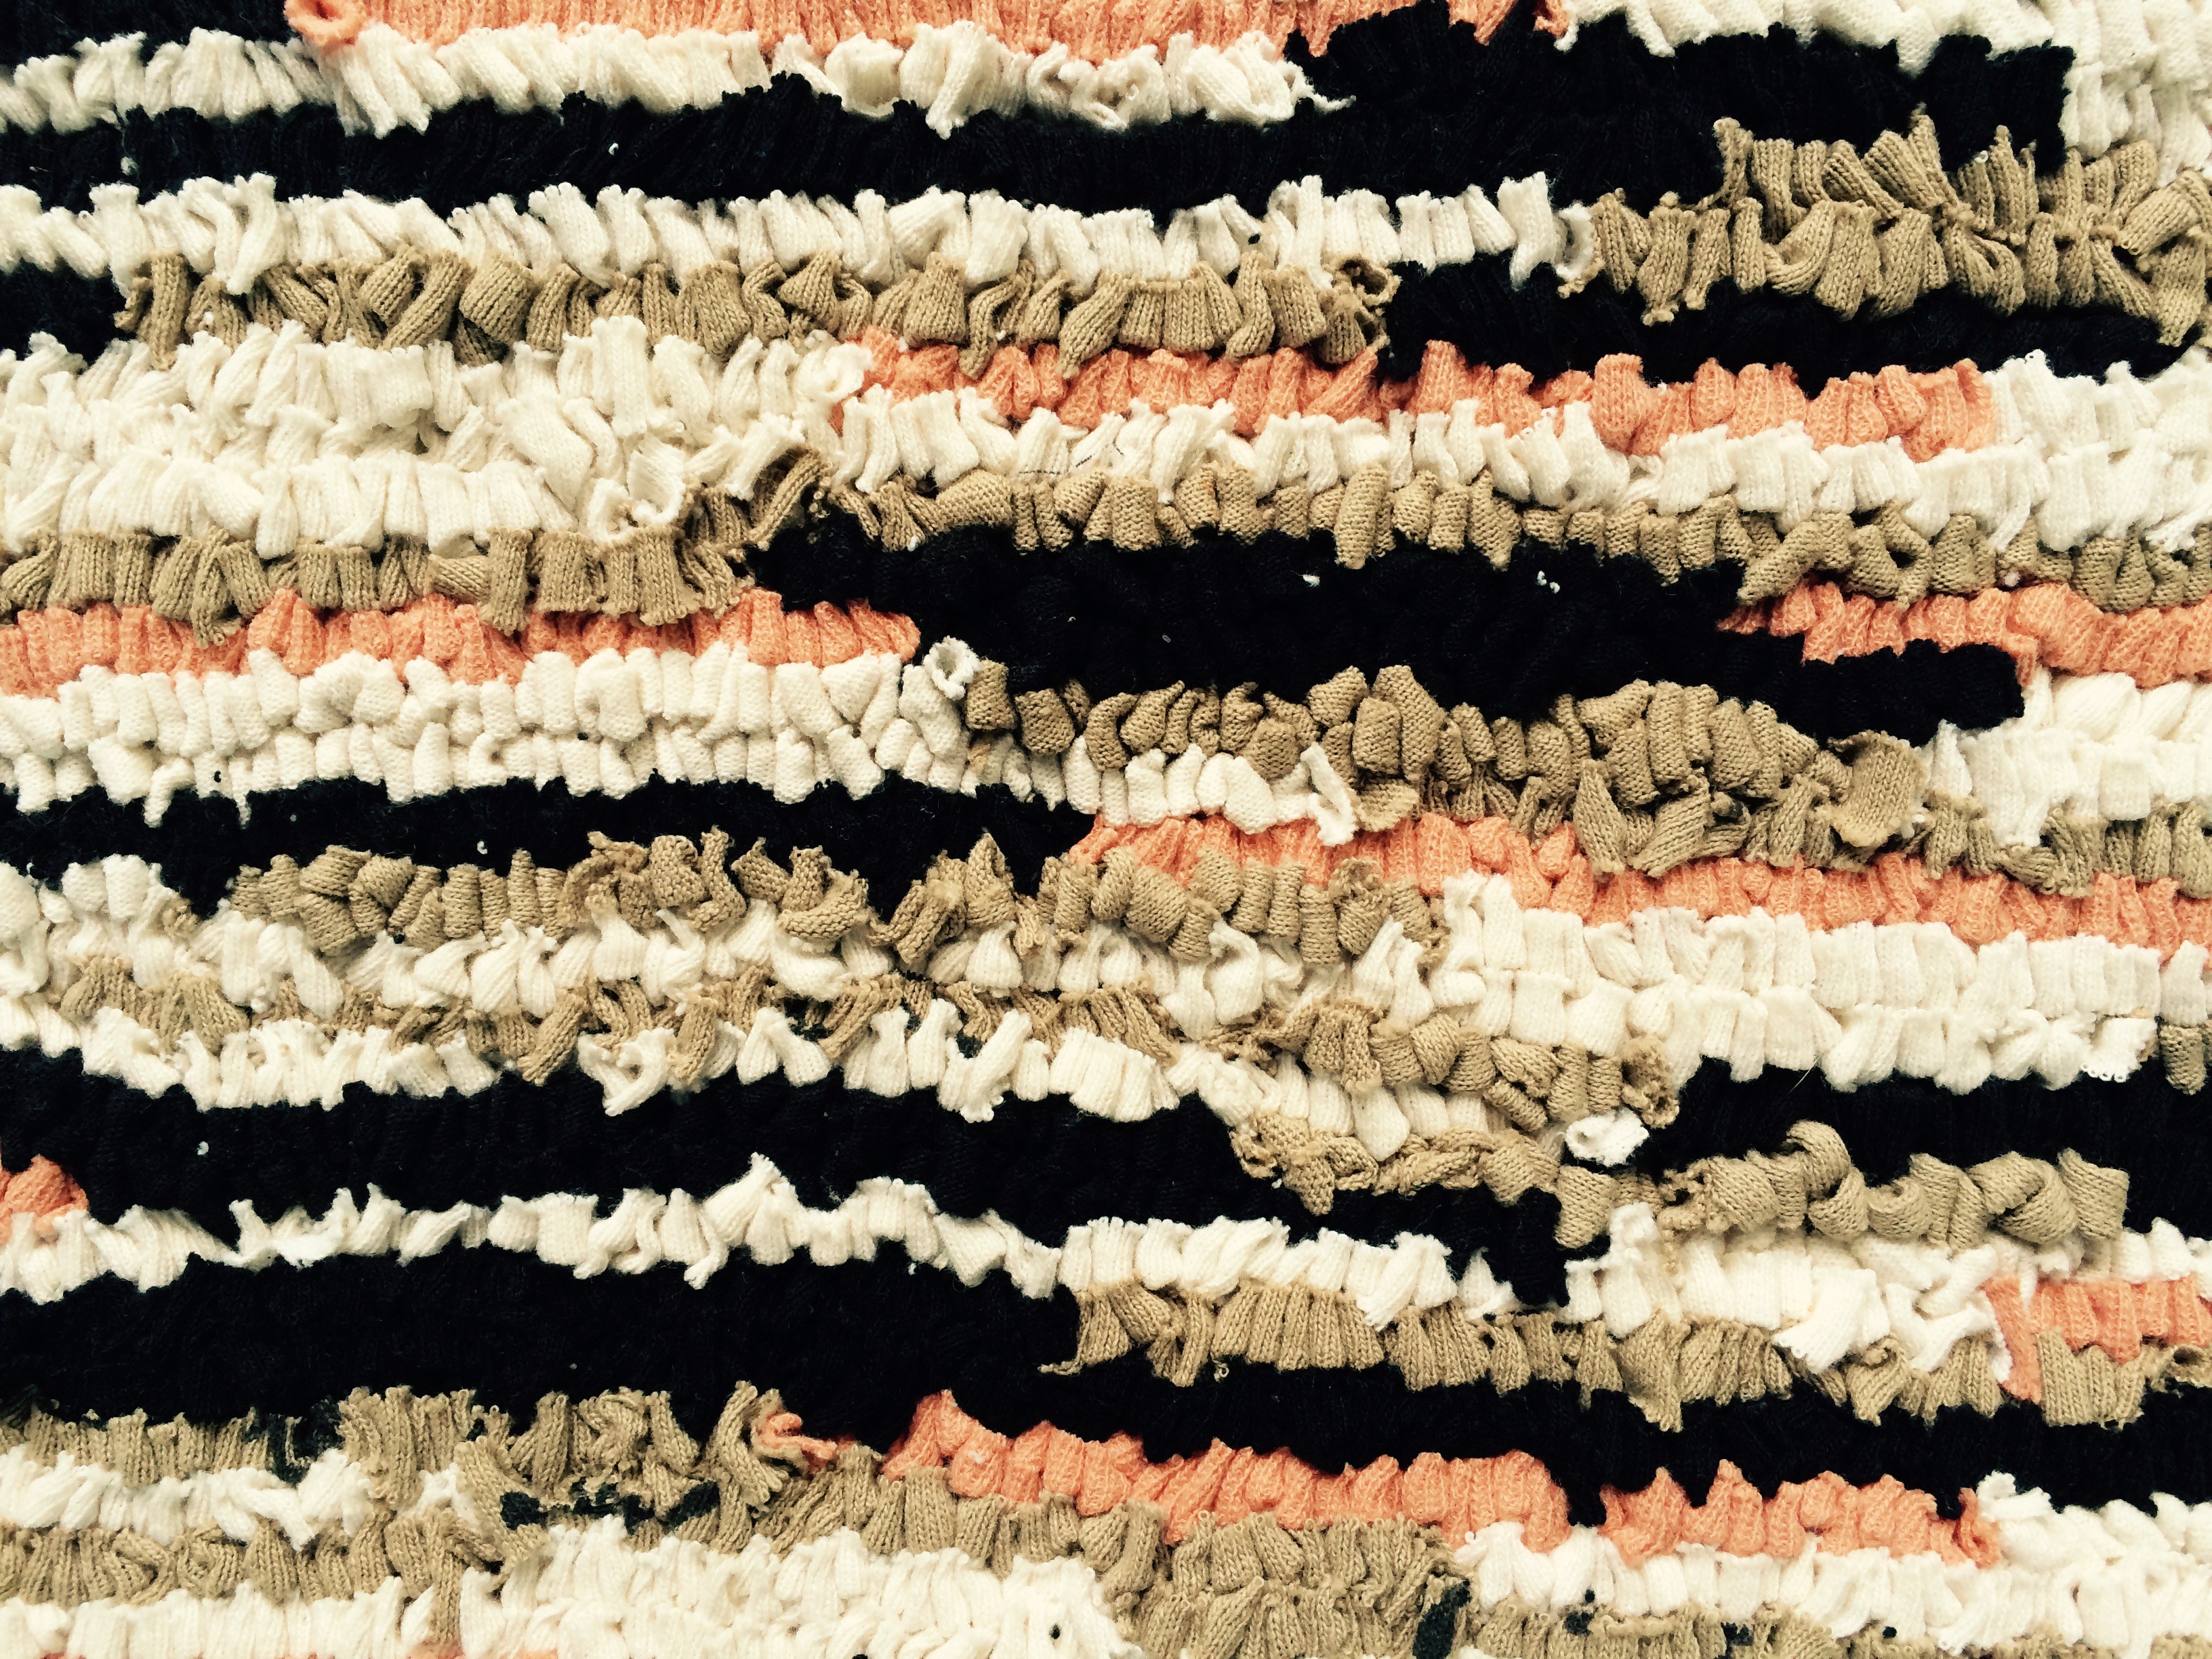 Earthworms Rug - close-up of the texture